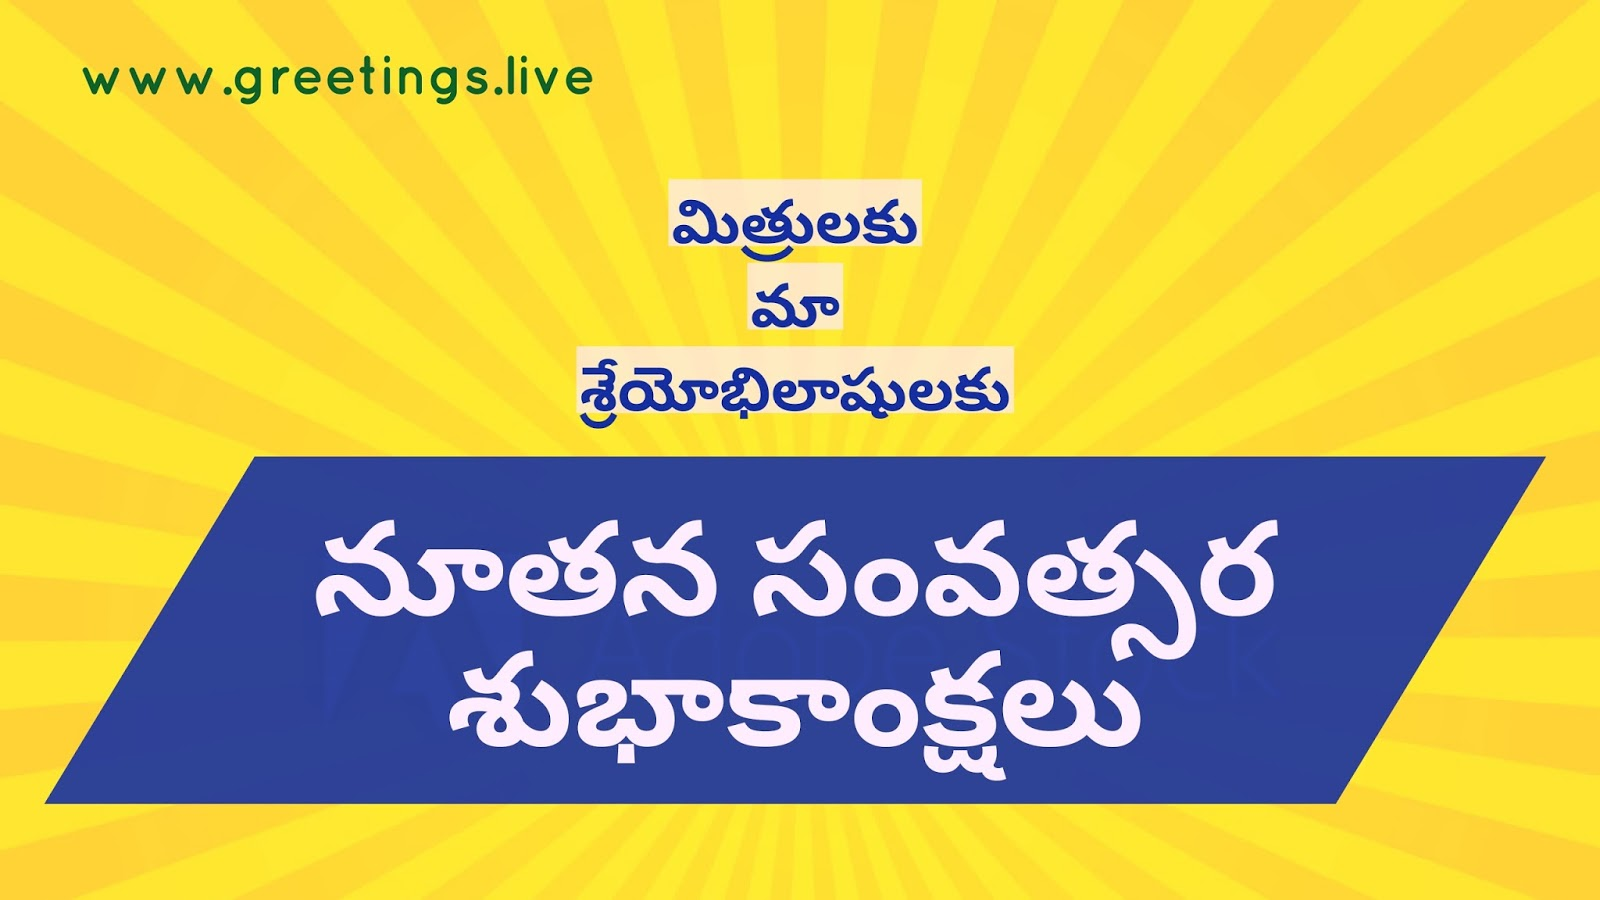 2018 new year wishes greetings telugu wishes on new year 2018 telugu wishes on new year 2018 kristyandbryce Image collections